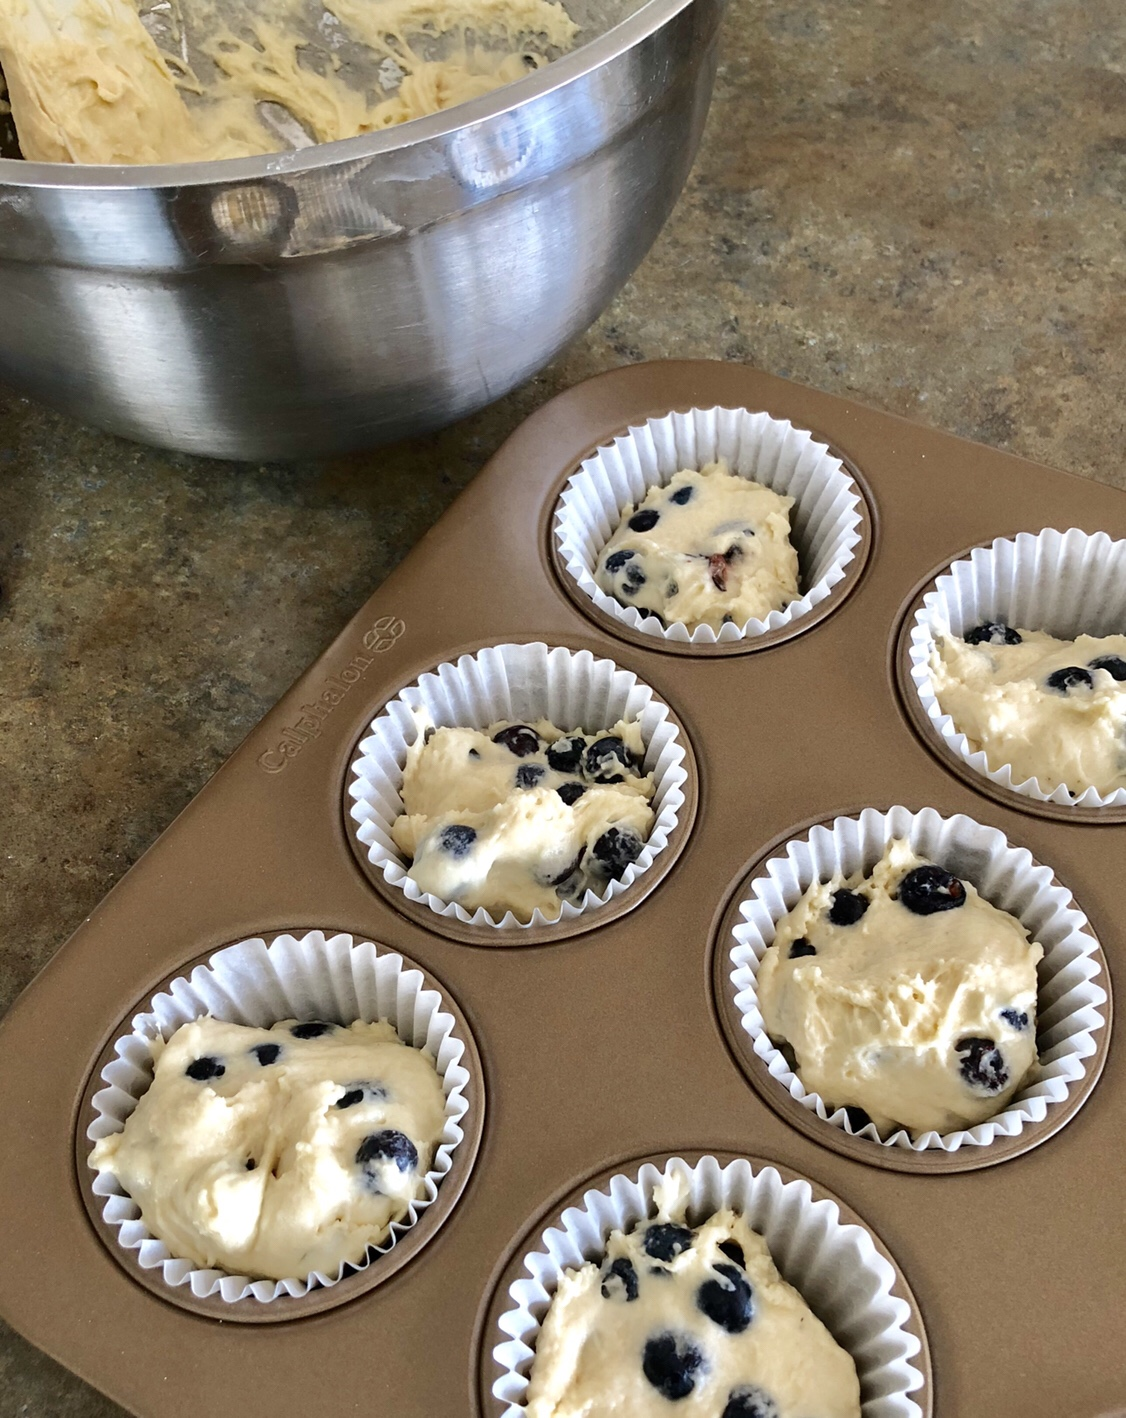 Fill a muffin pan with 12 paper-lined baking cups. Spoon the batter into each baking cup filling 2/3 of the way full.